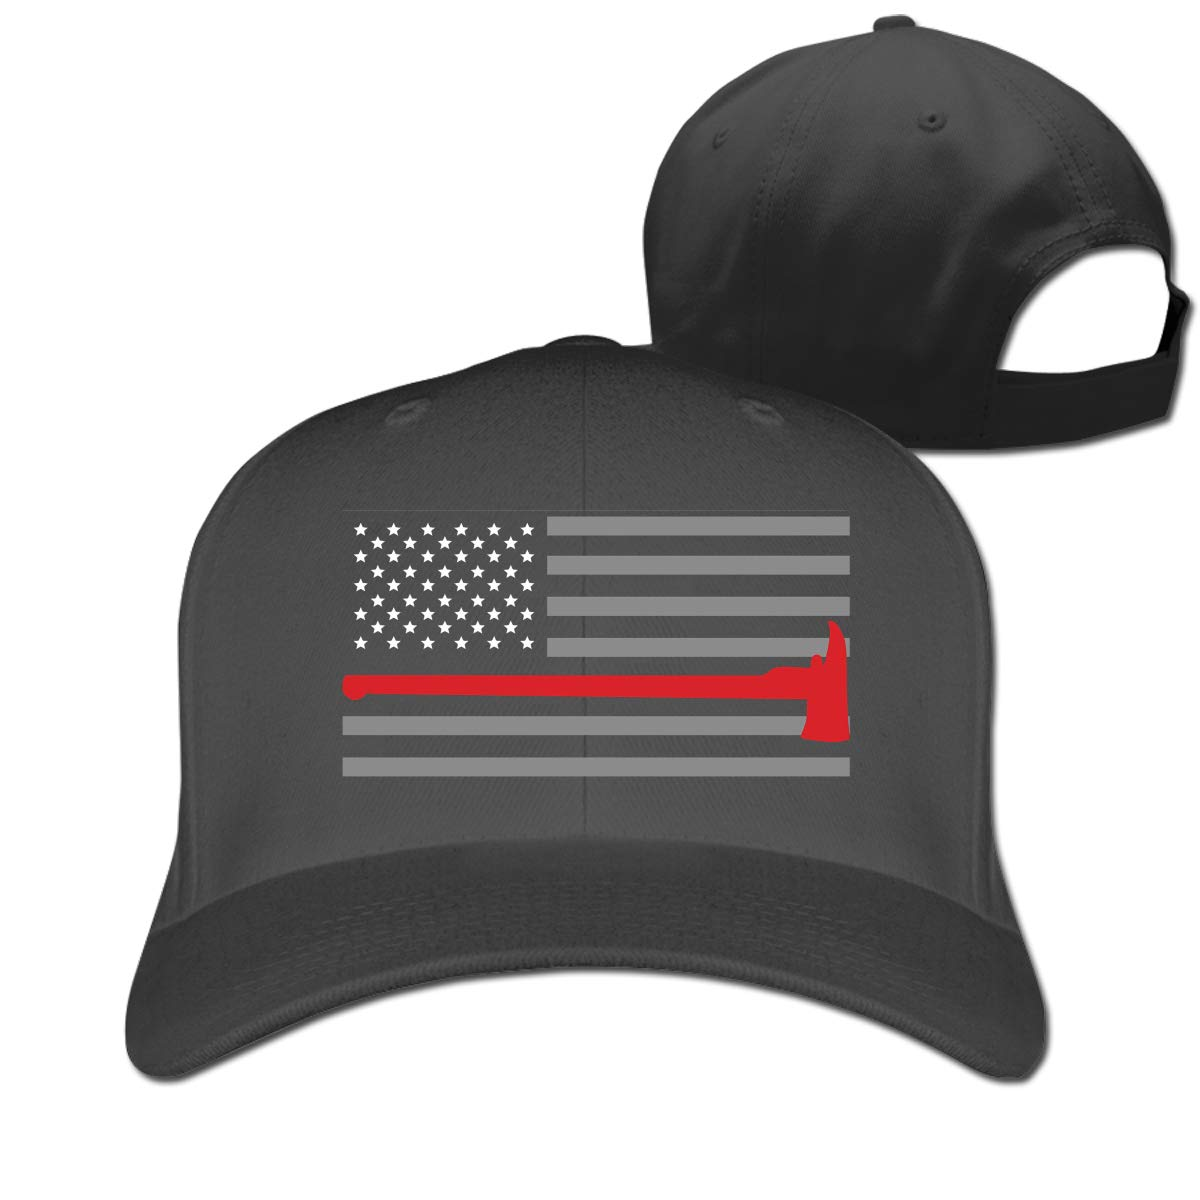 Thin Red Line Flag Fashion Adjustable Cotton Baseball Caps Trucker Driver Hat Outdoor Cap Black